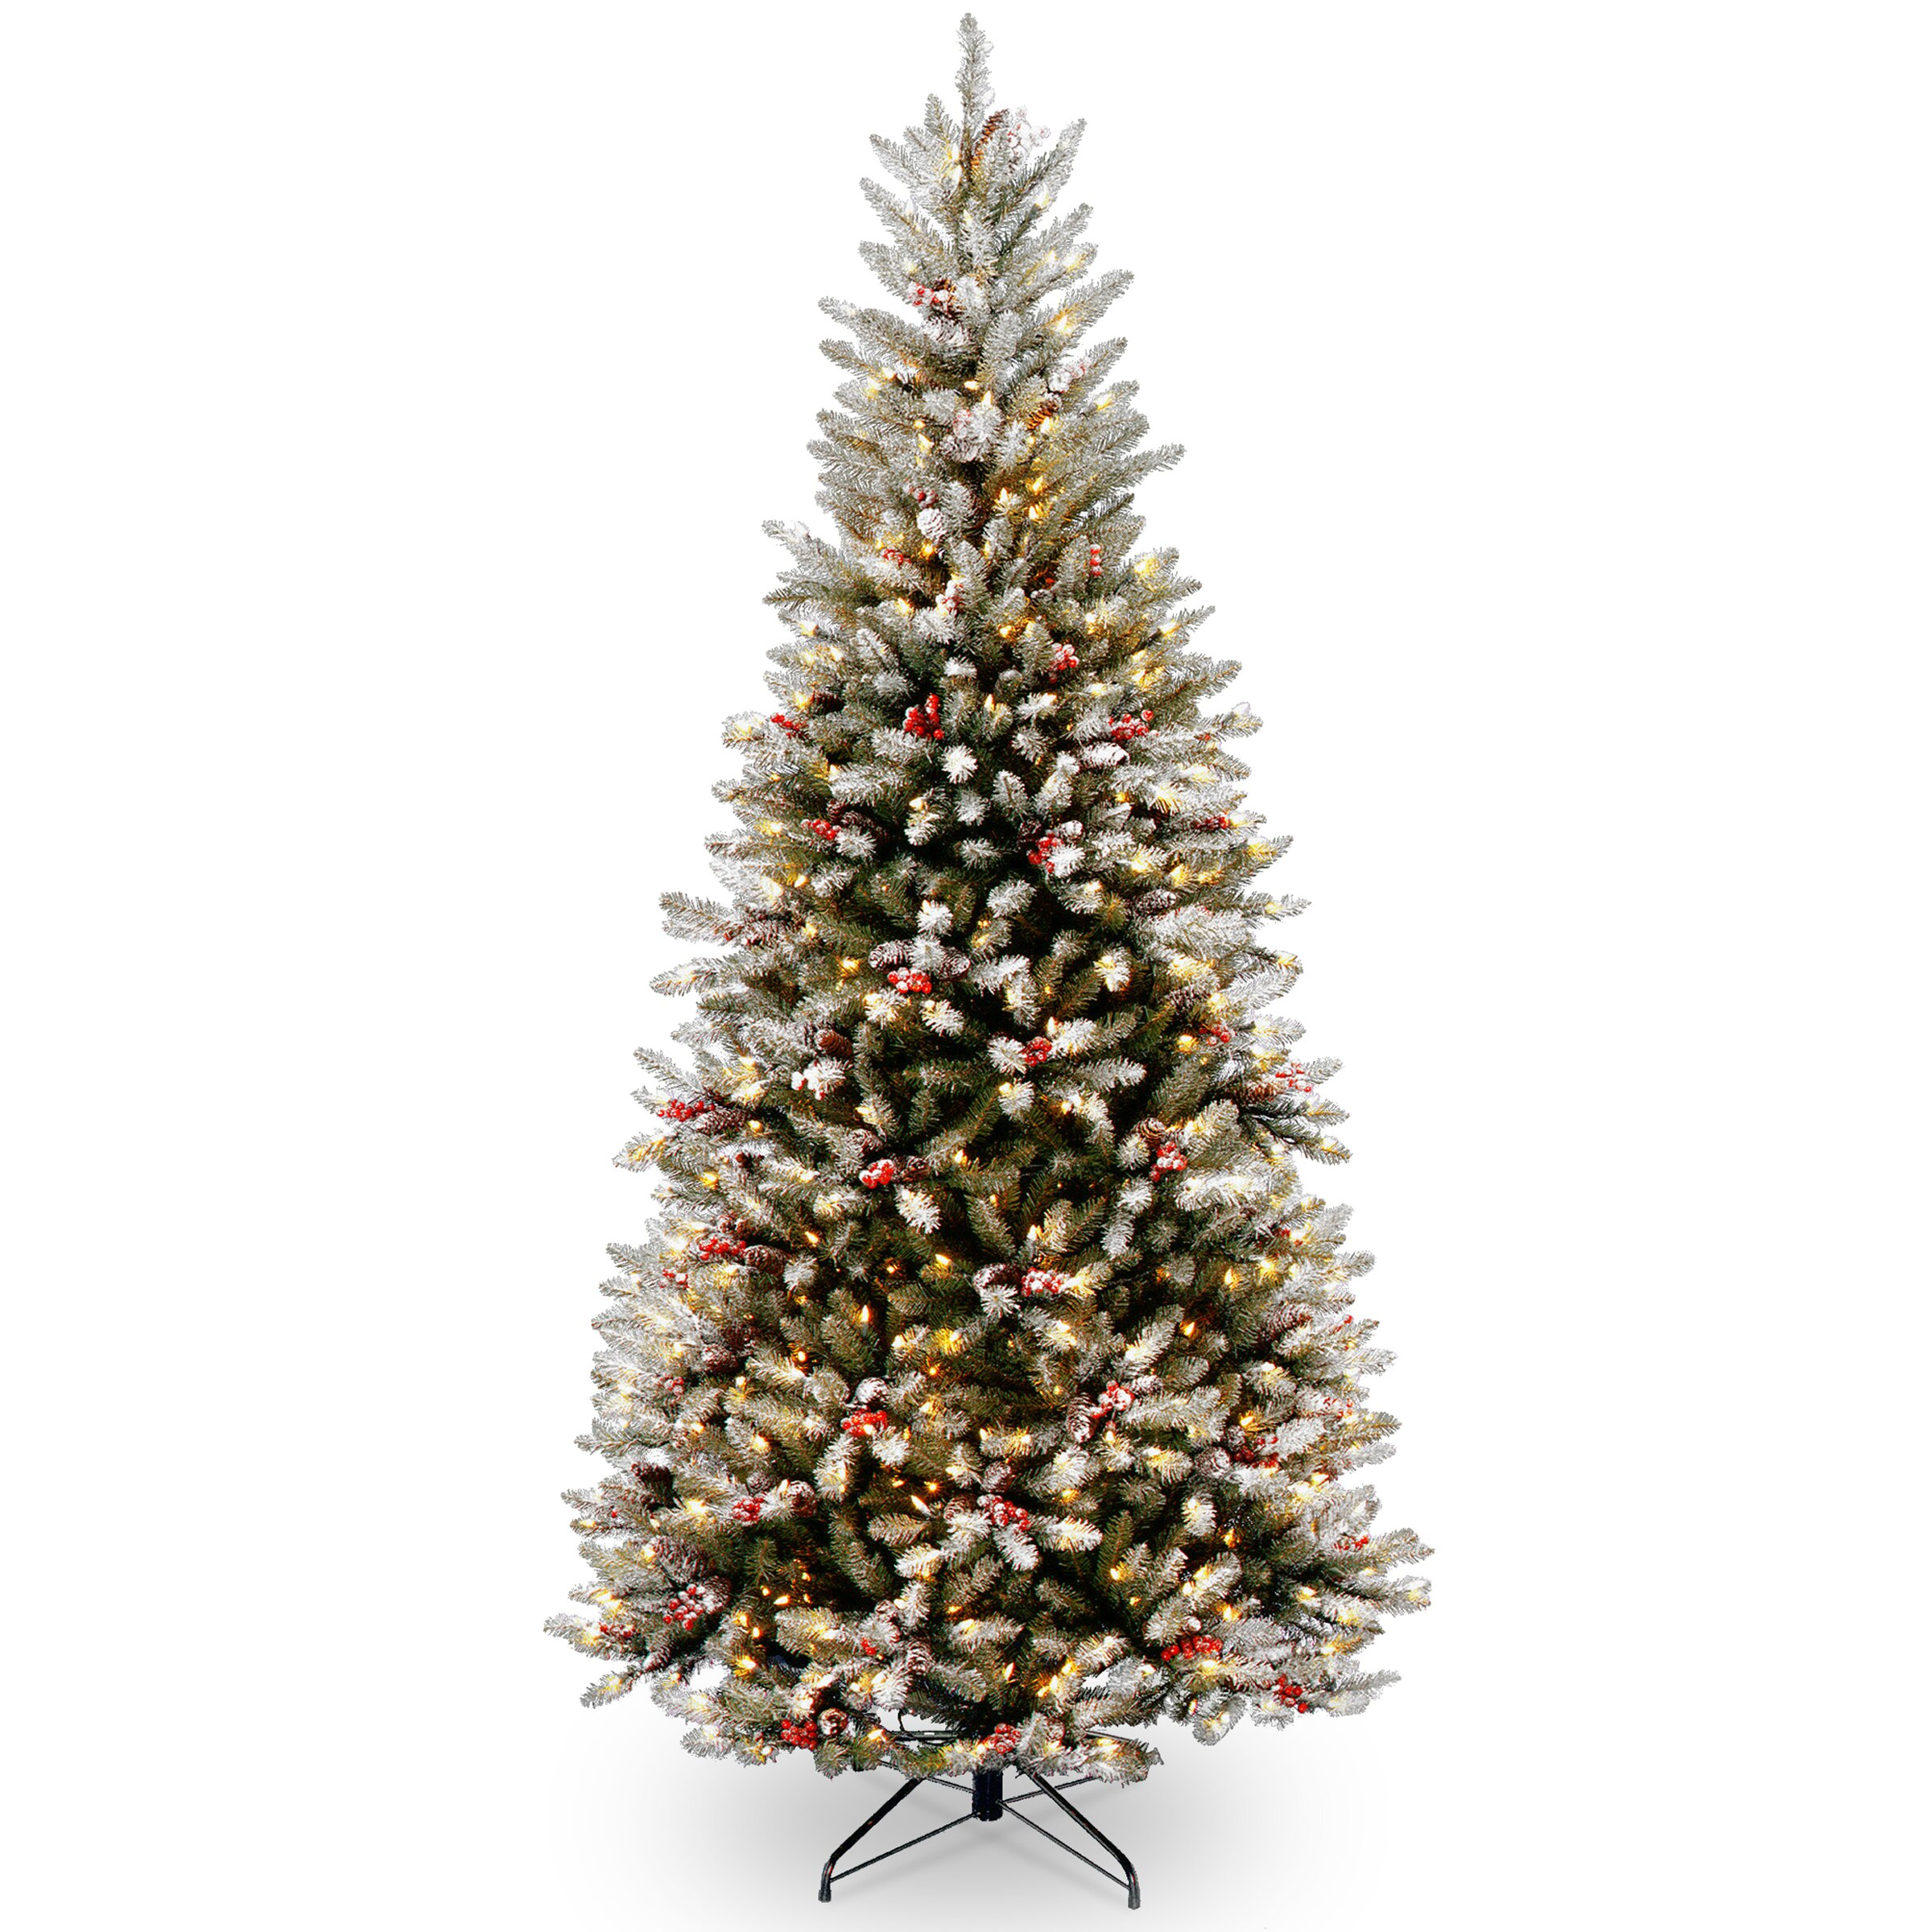 Artificial Christmas Trees: National Tree Co. 7.5' Frosted Green Fir Trees Artificial